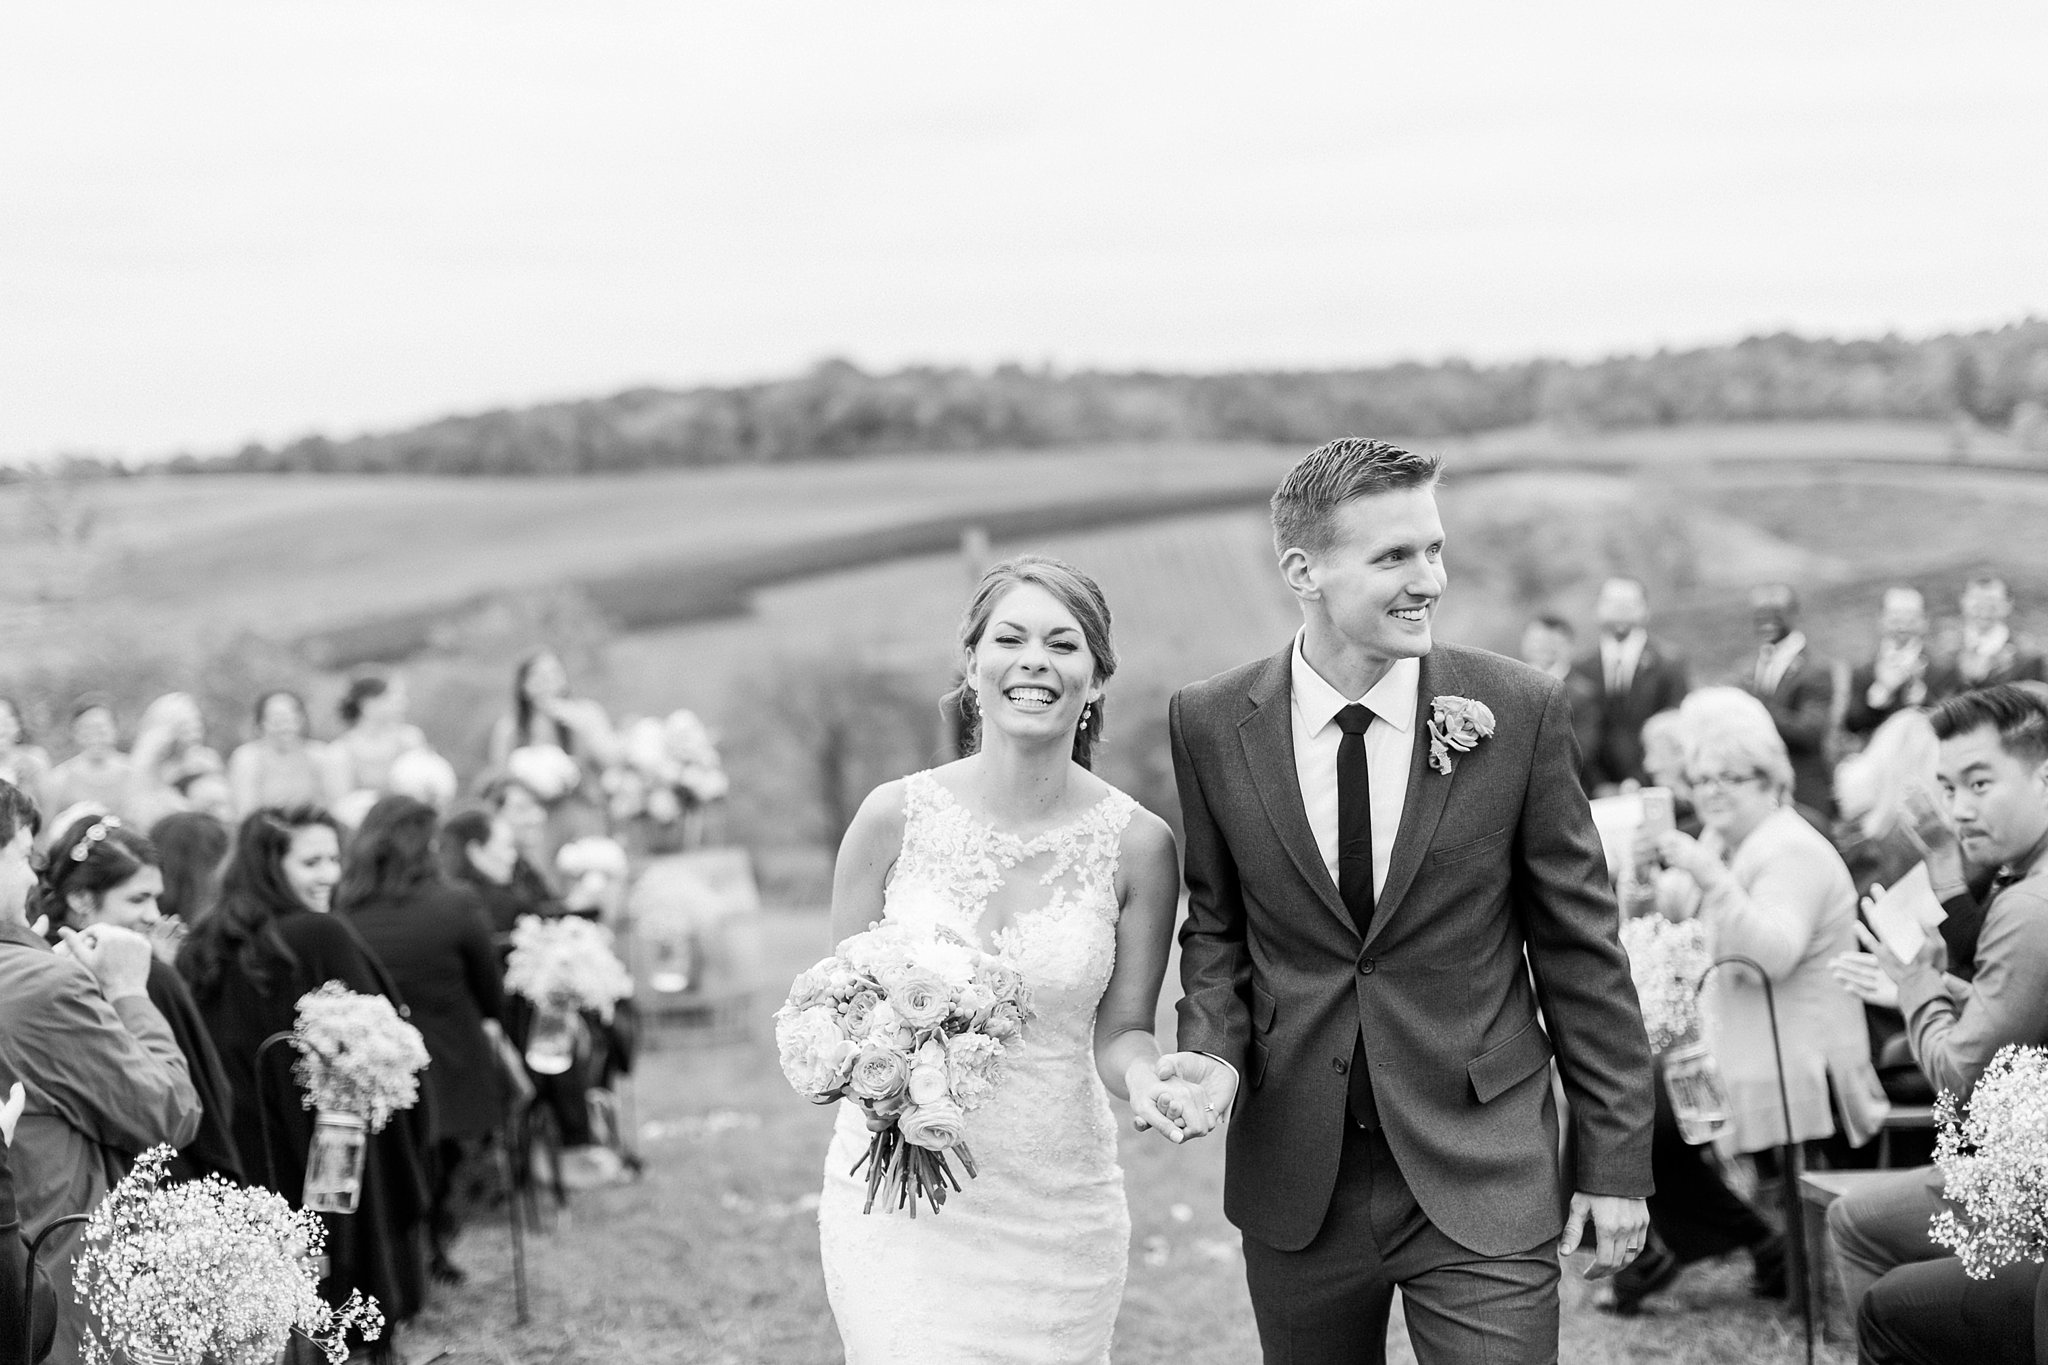 Stone Tower Winery Wedding Photos Virginia Wedding Photographer Megan Kelsey Photography Sam & Angela-172.jpg